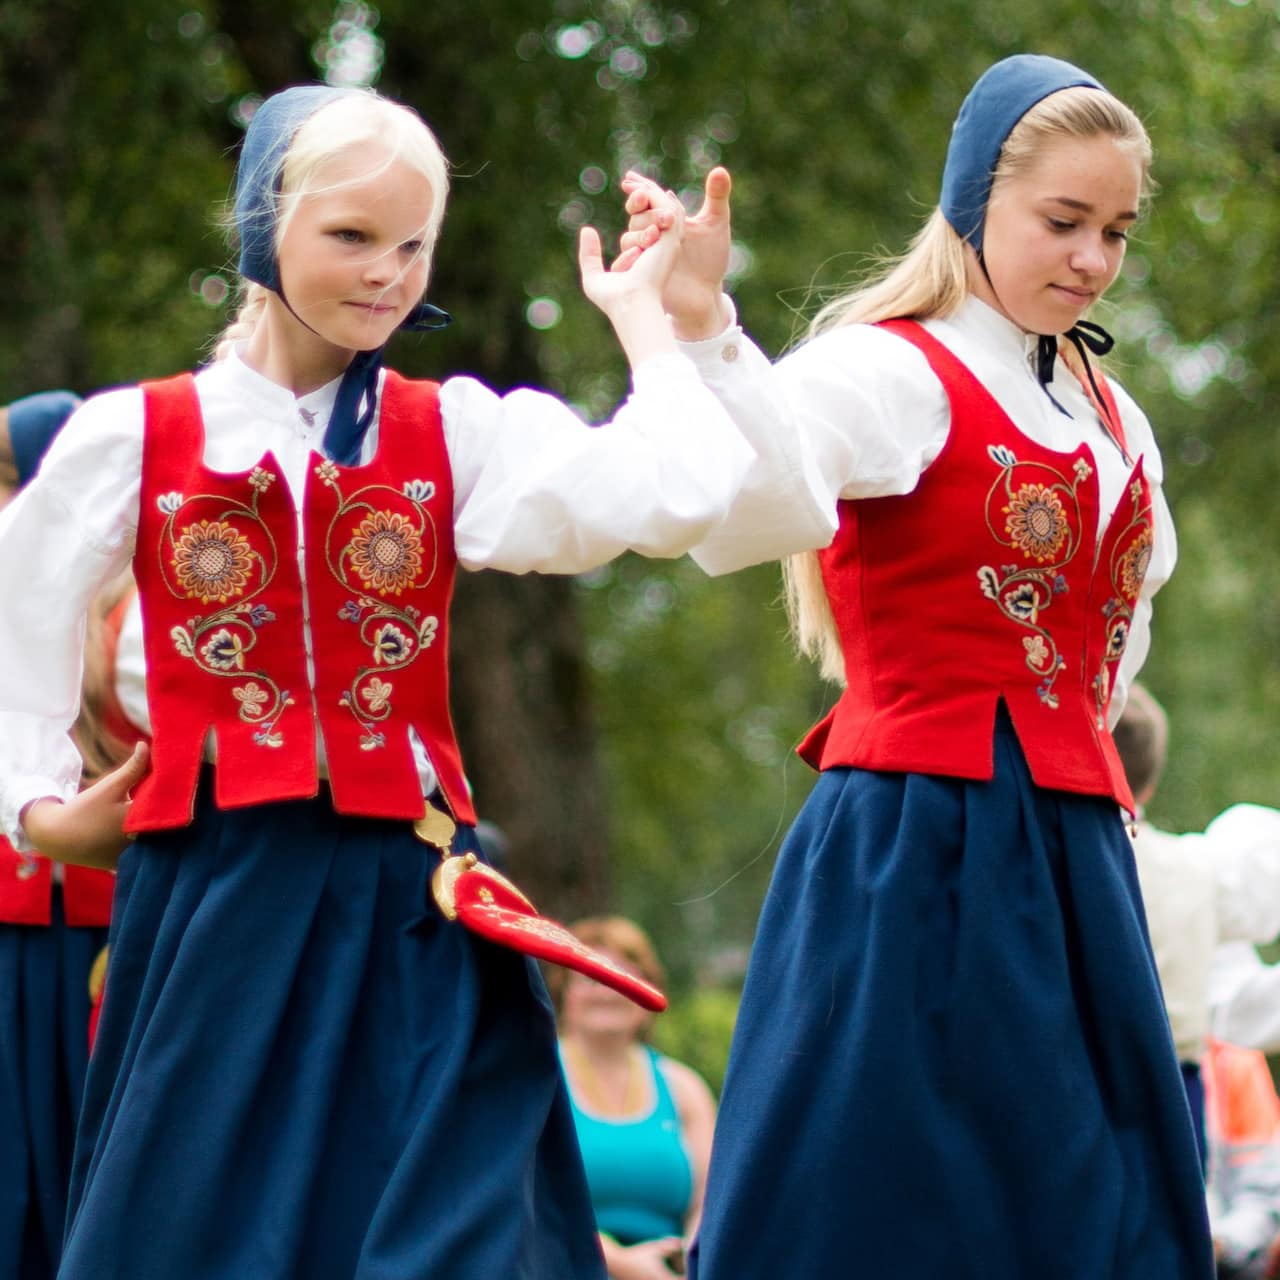 4 Norwegian girls dressed in traditional costumes folk dance